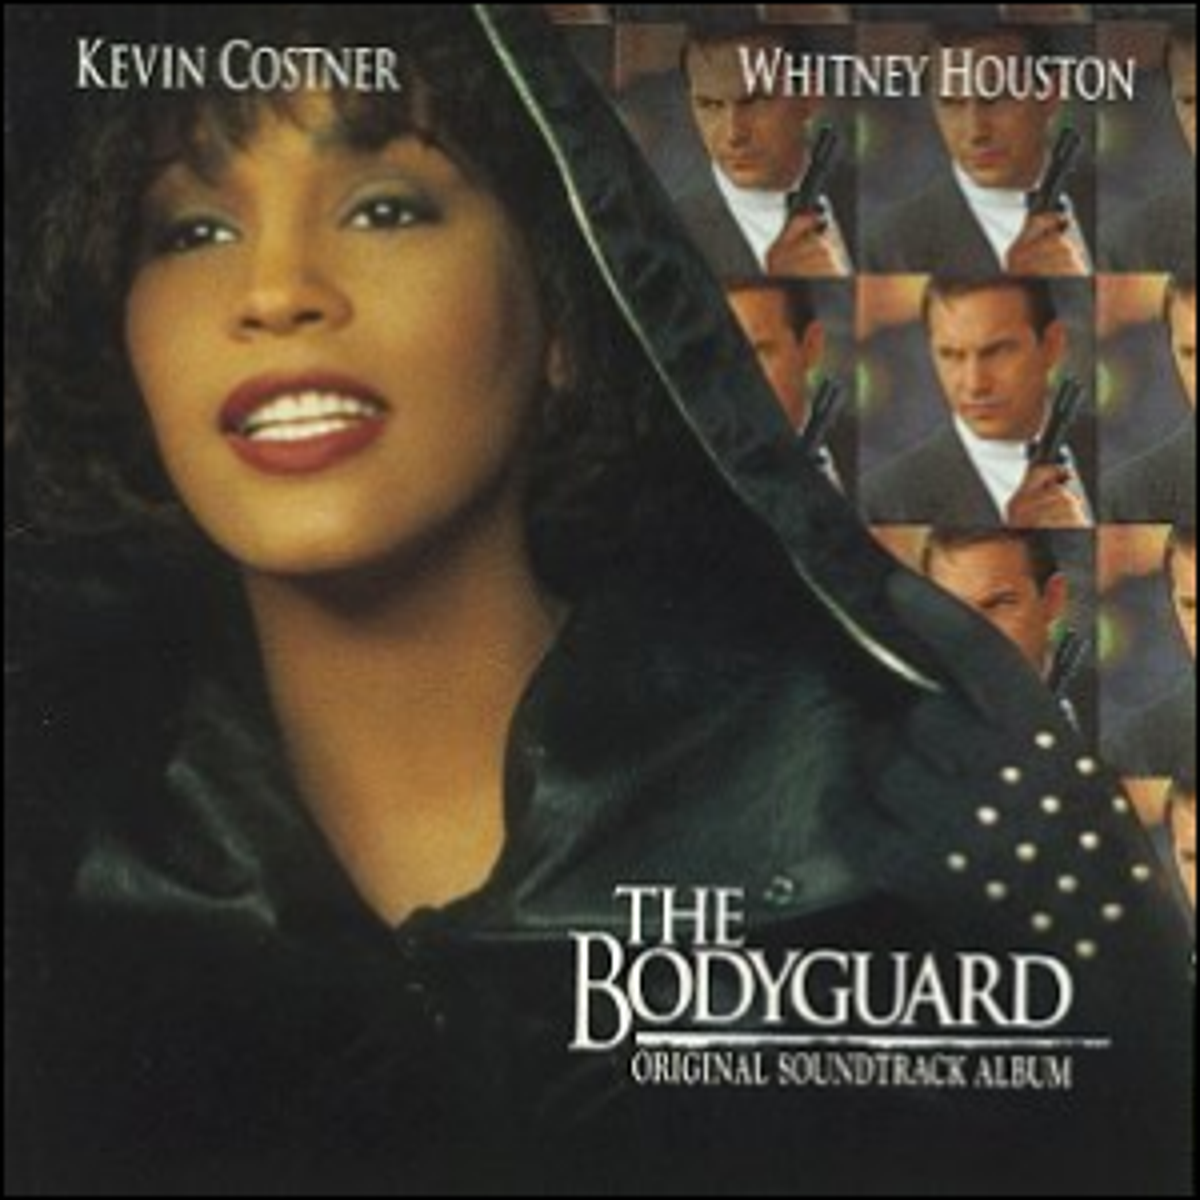 The front cover artwork for the movie soundtrack of The Bodyguard.